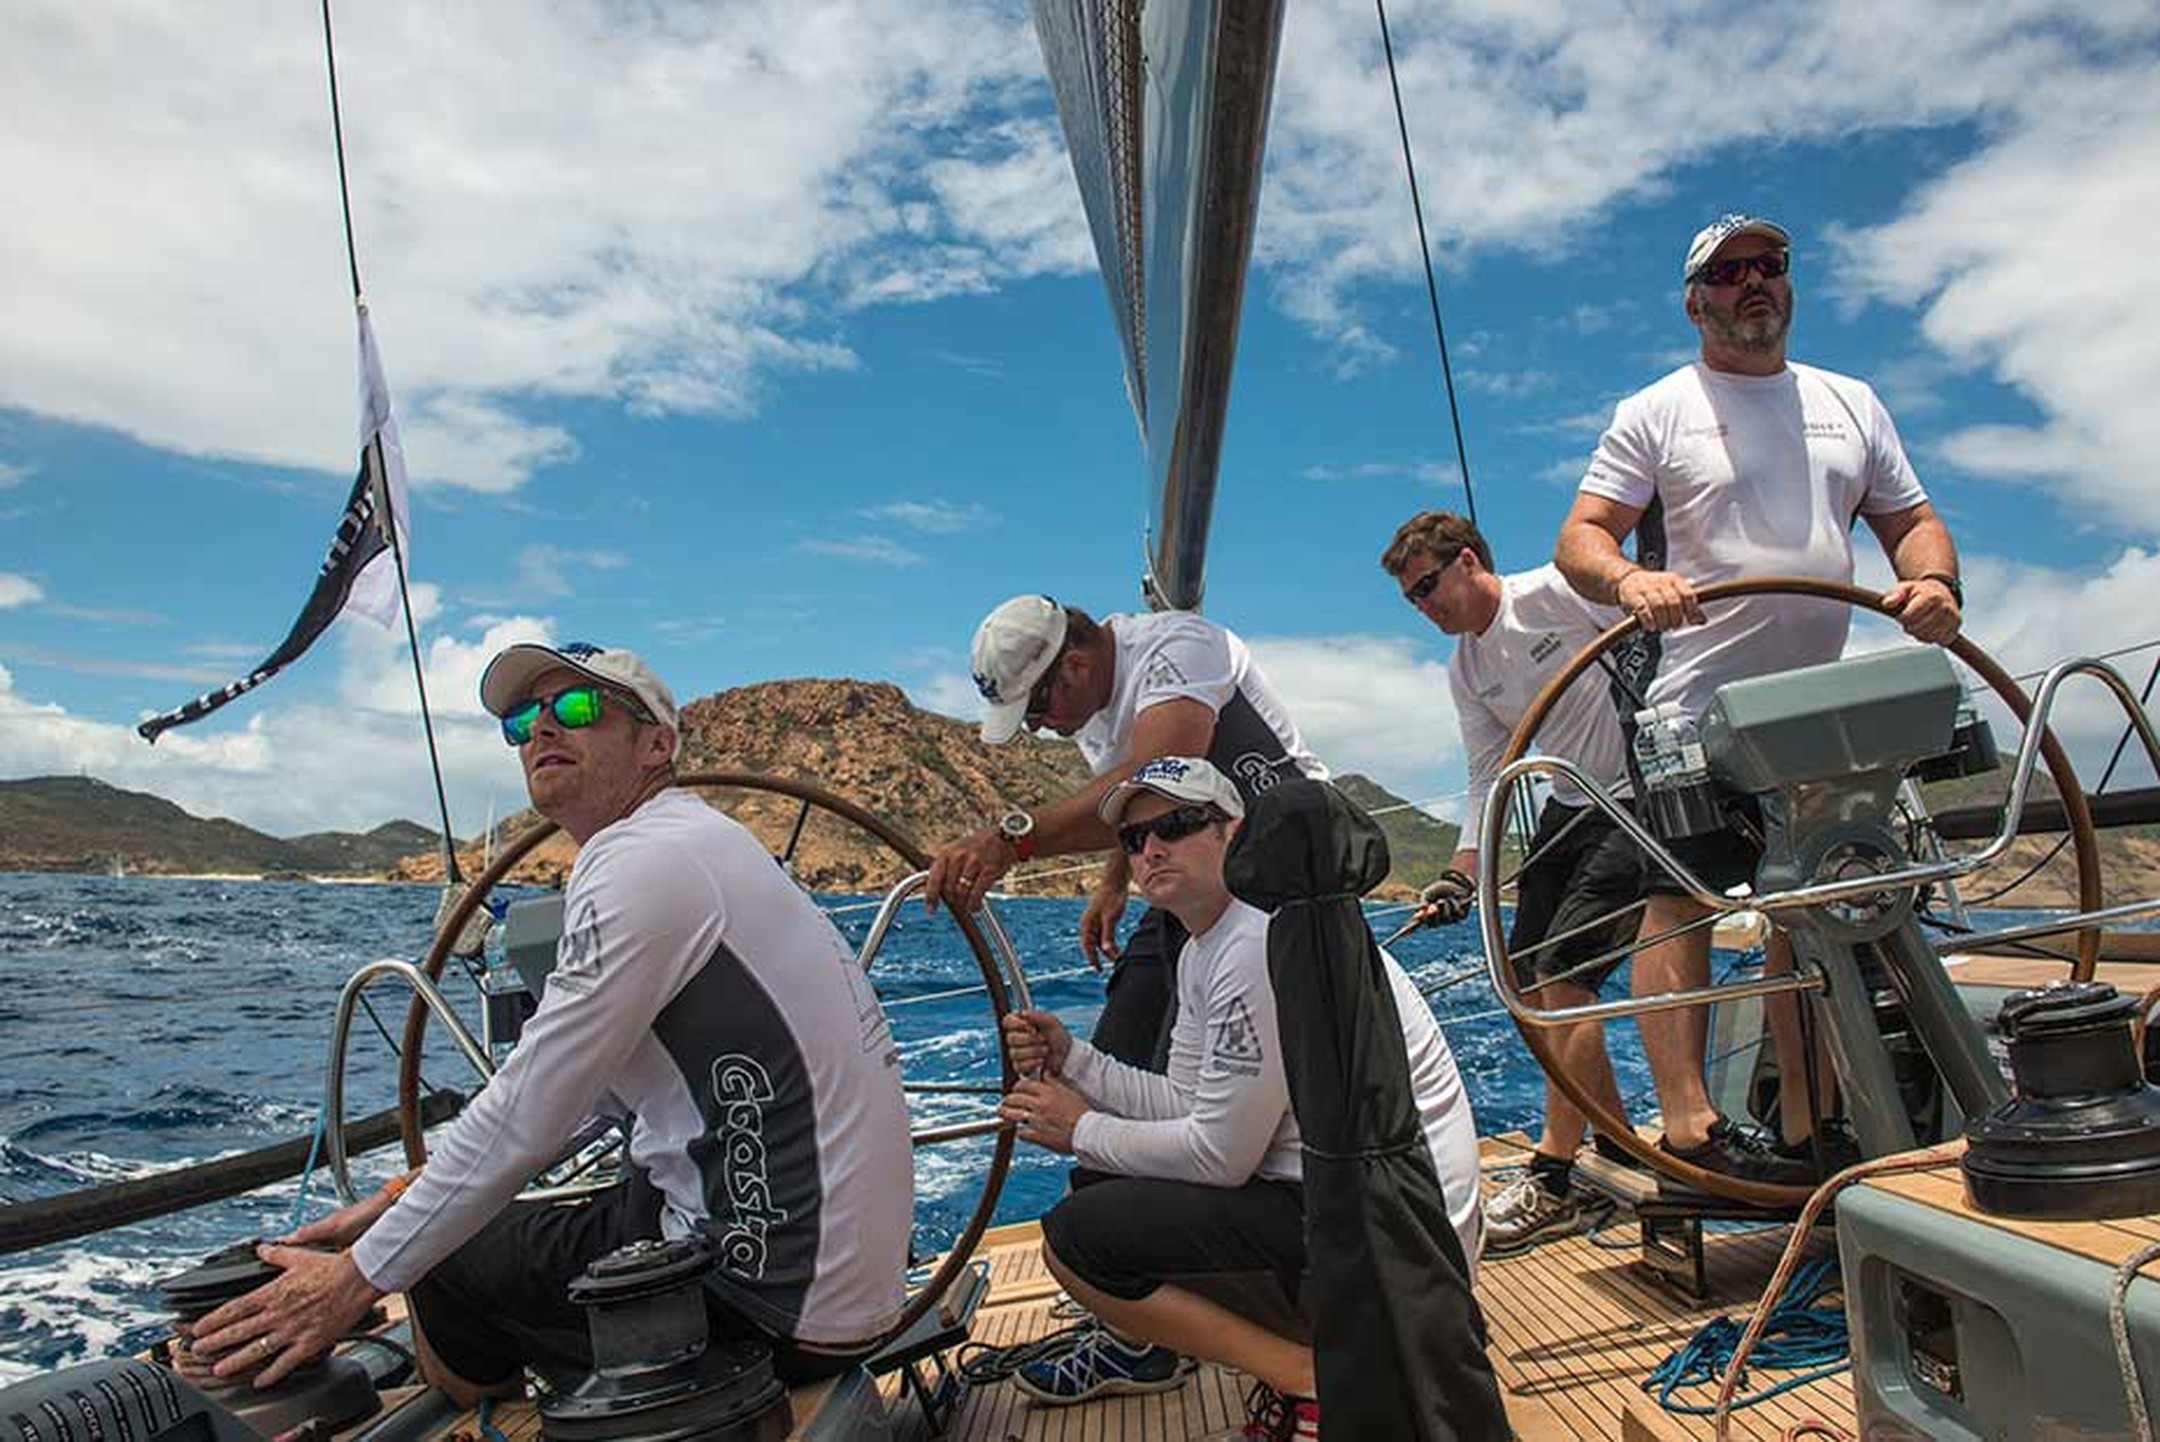 The crew on board Jolt 2 all wore Richard Mille watches for the Les Voiles de Saint Barth 2014 regatta, putting these complex mechanical creations to the ultimate test